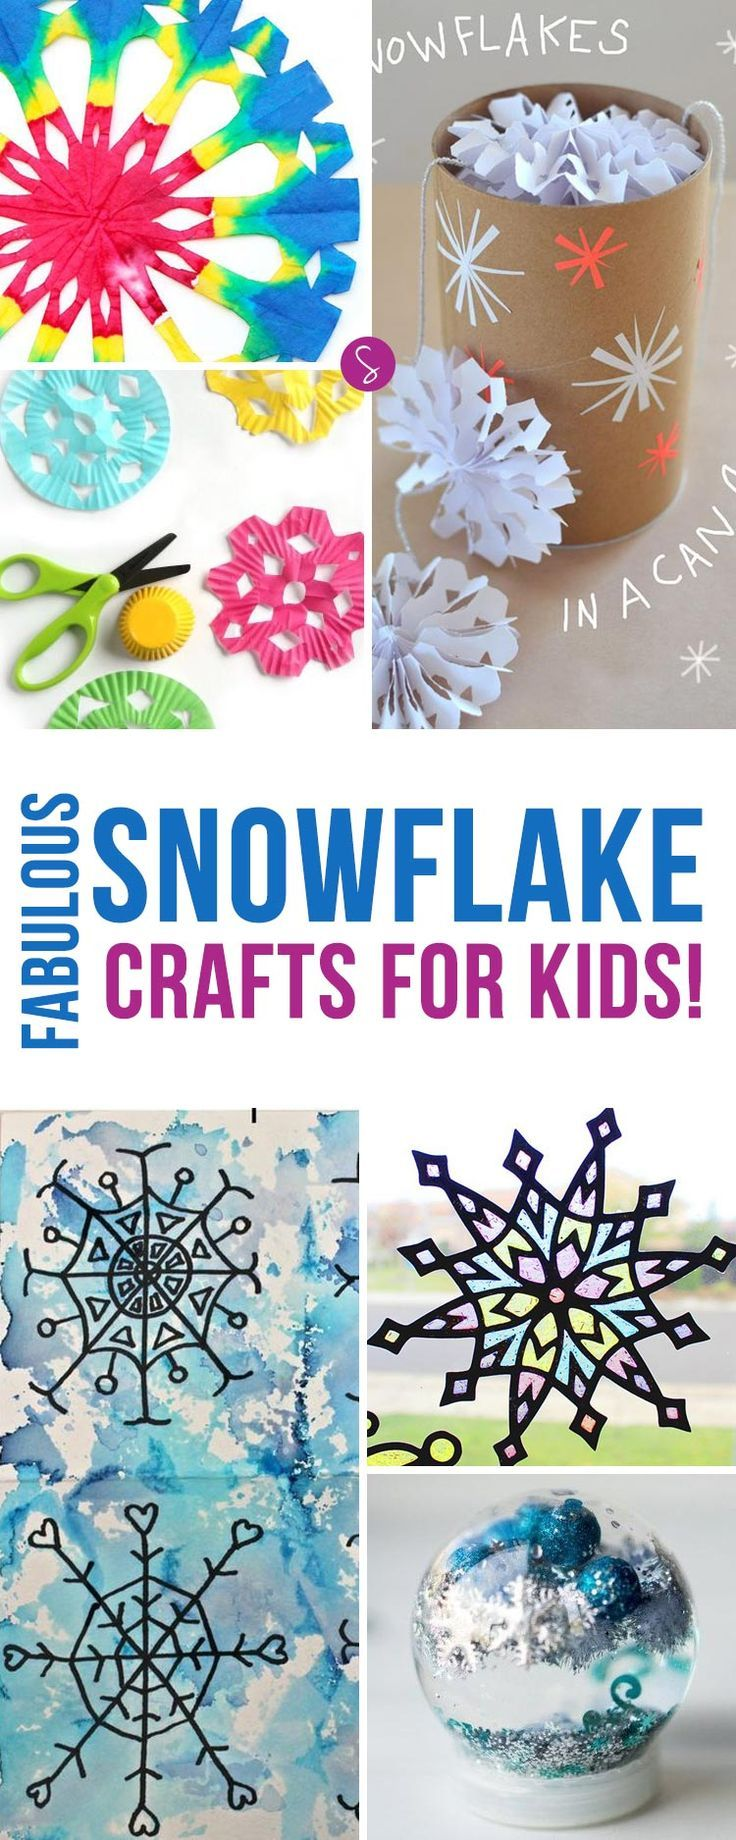 These Snowflake Crafts Look Like So Much Fun Cant Wait To Fill Our Home With Snowflakes This Christmas Thanks For Pinning